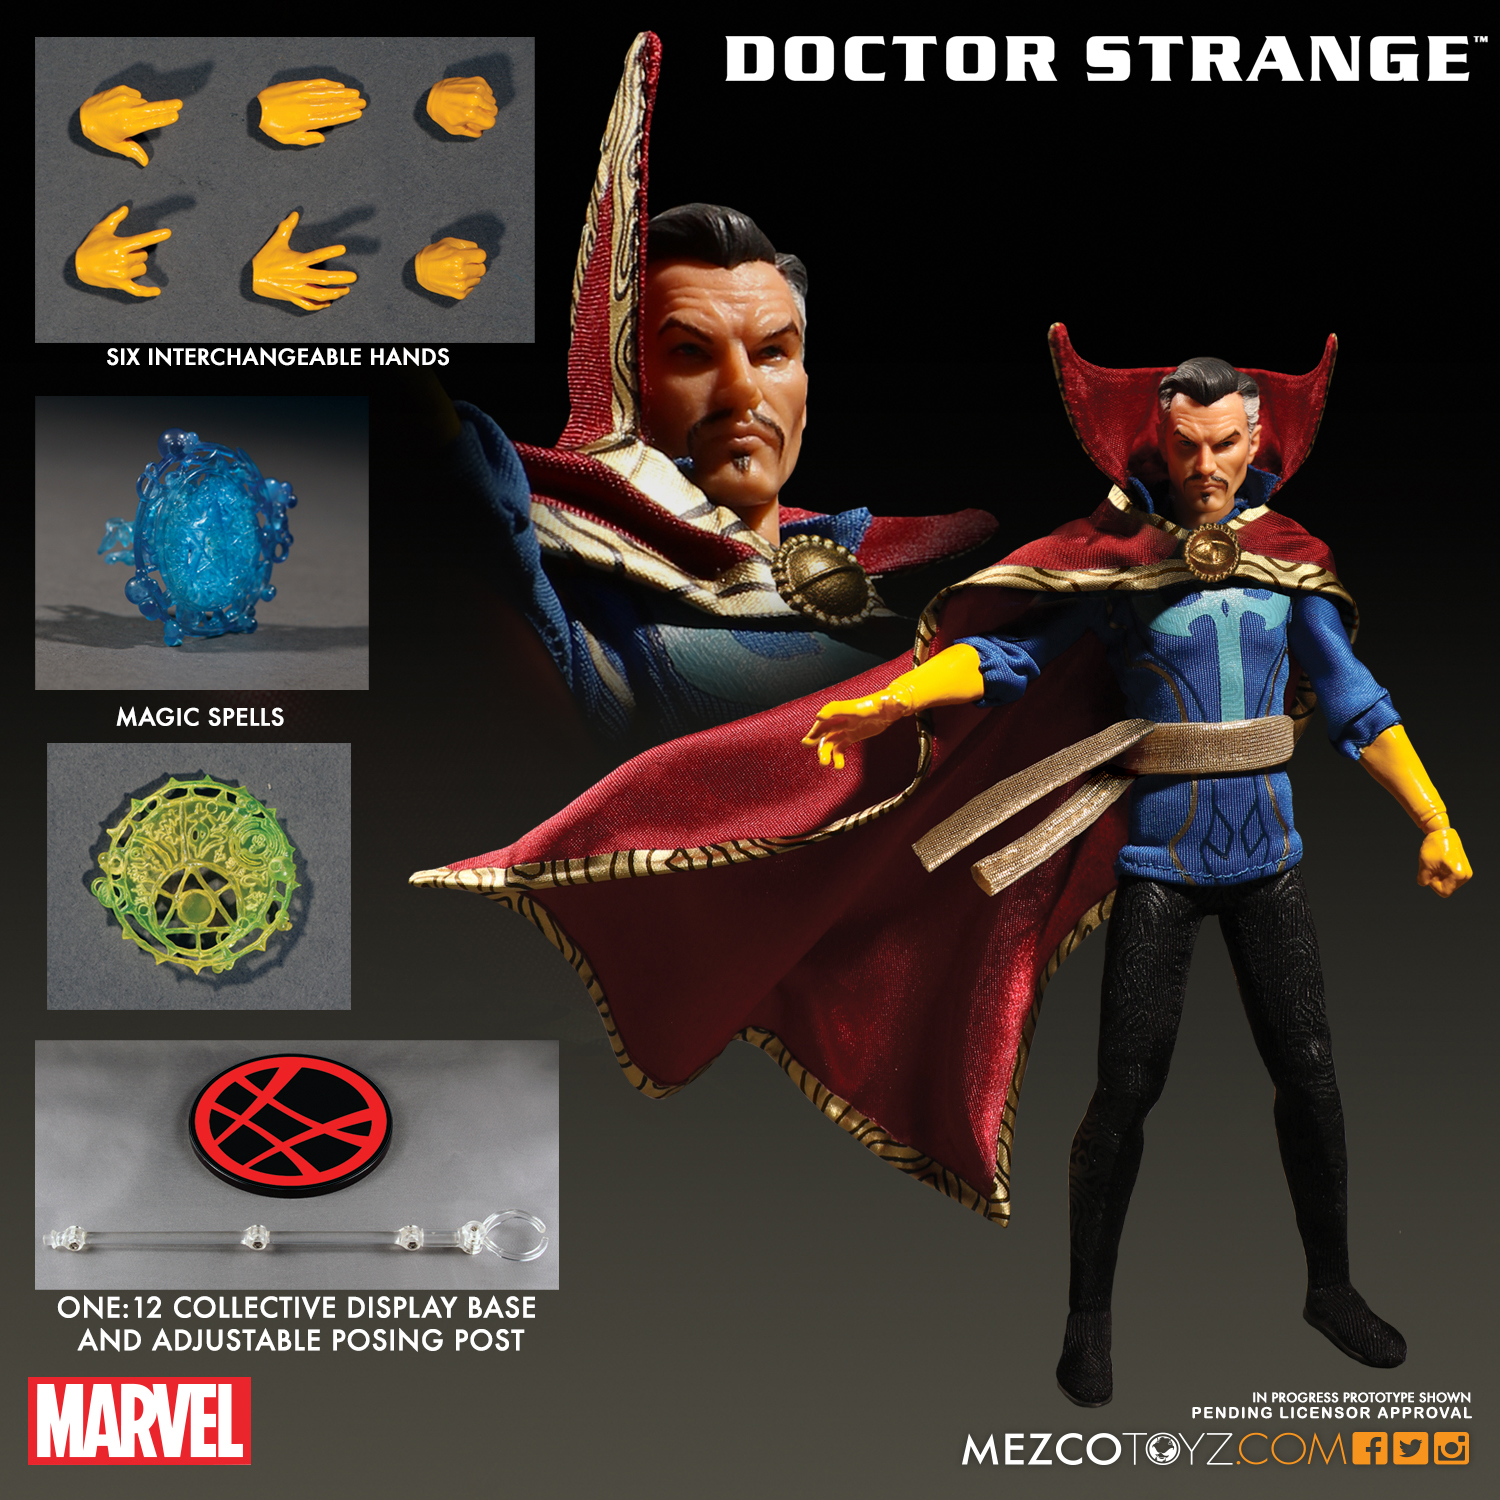 Mezco 2017 One:12 Doctor Strange